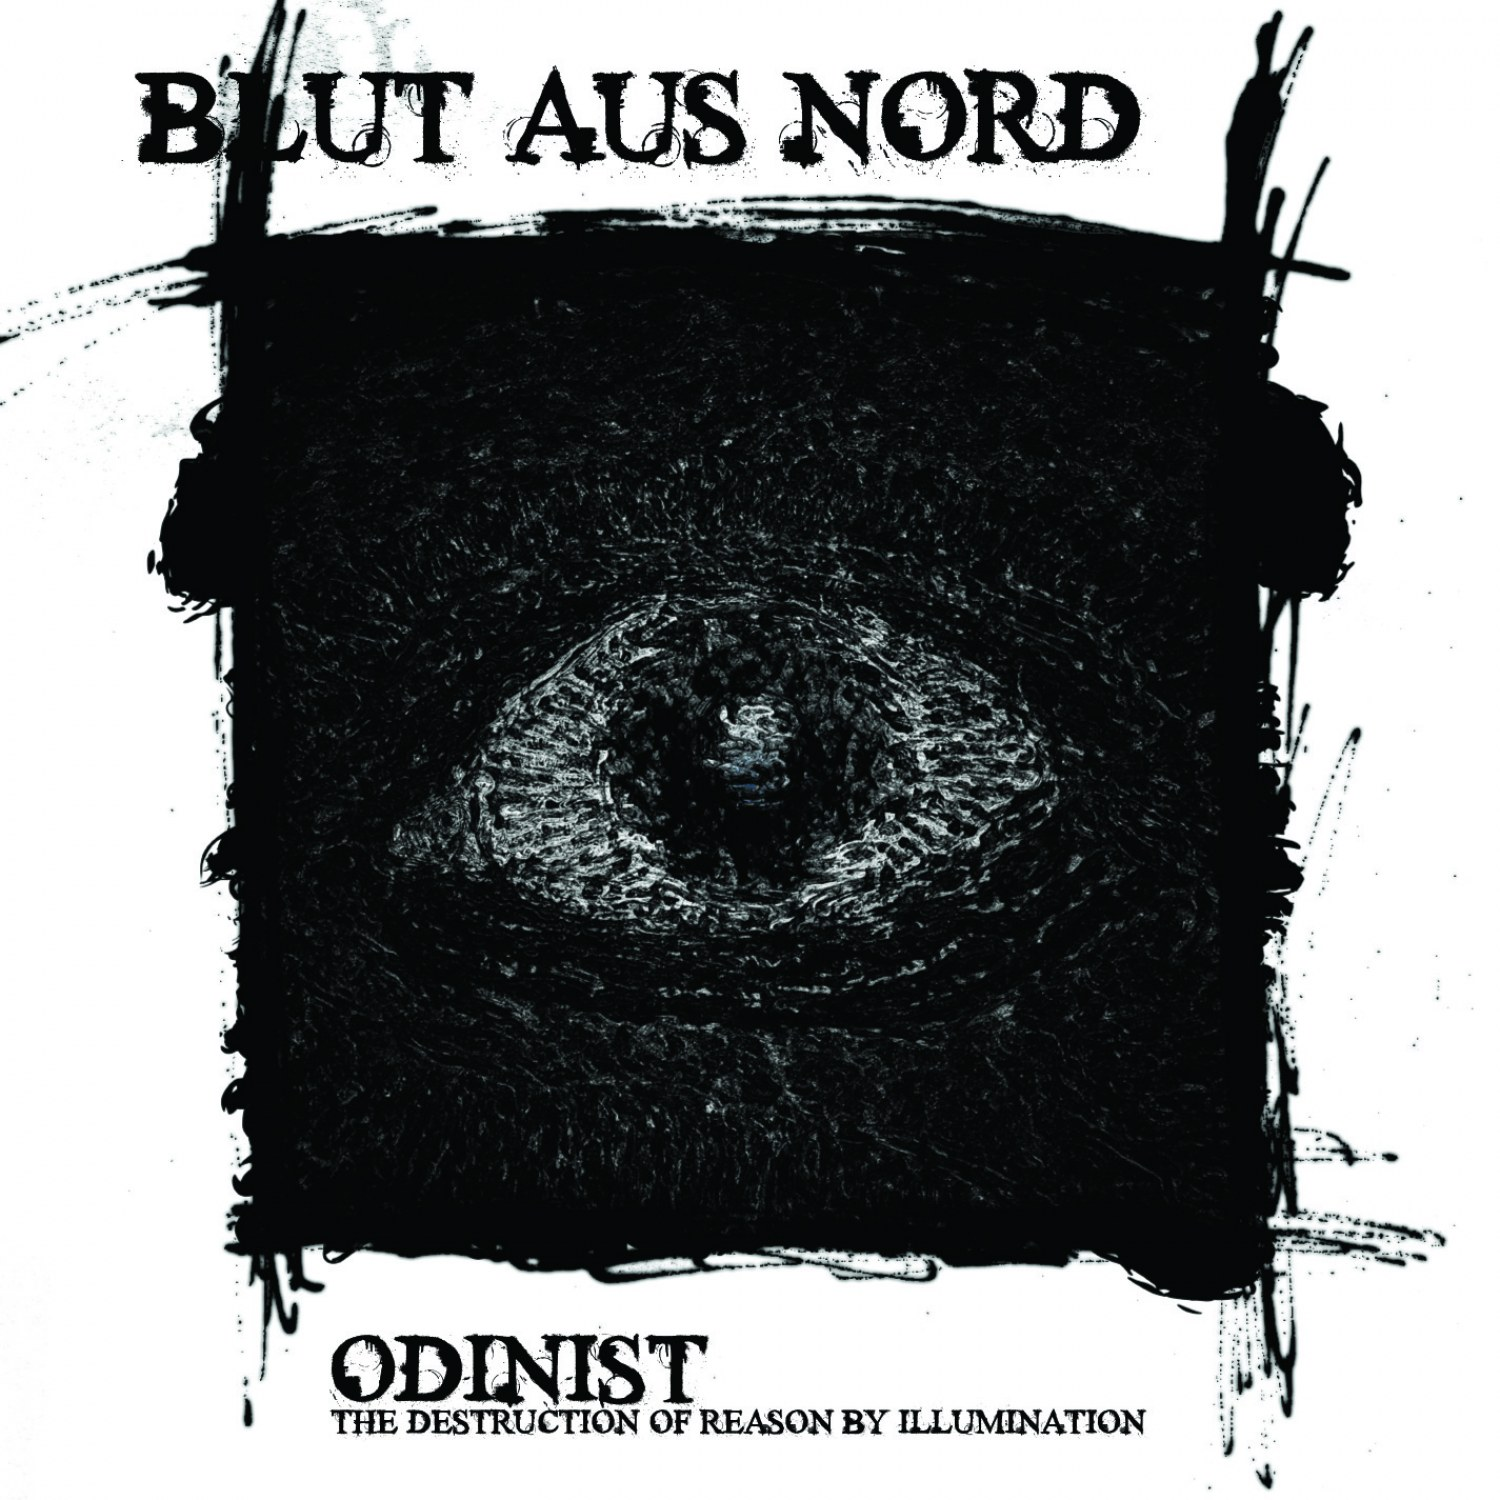 Blut Aus Nord - Odinist (The Destruction of Reason by Illumination)